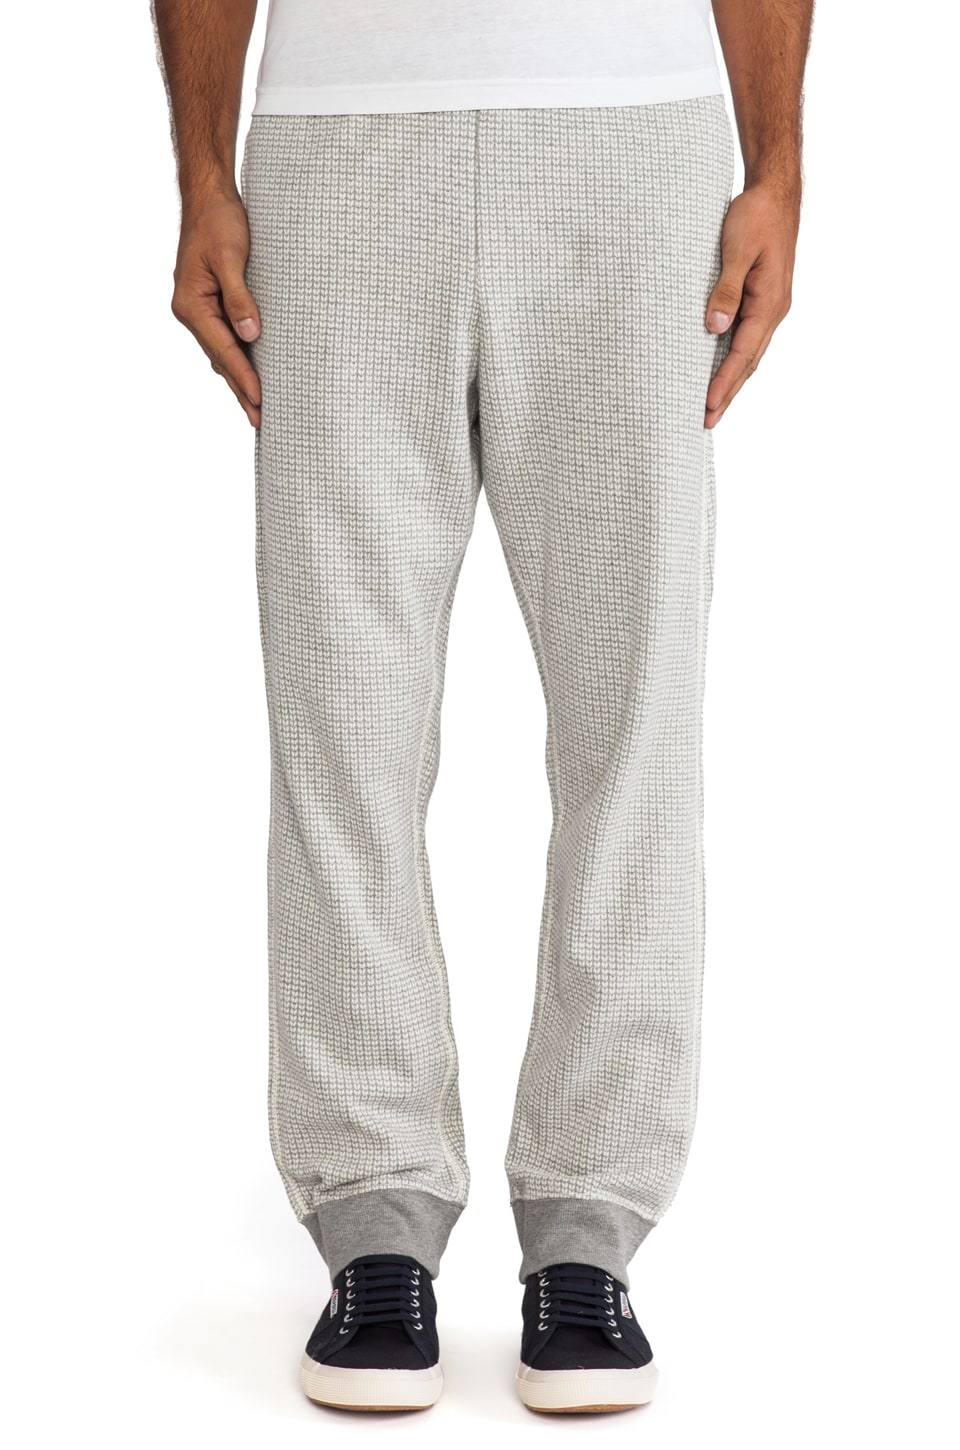 Burkman Bros. Rib Sweatpant Jacquard Knit in Grey/Natural